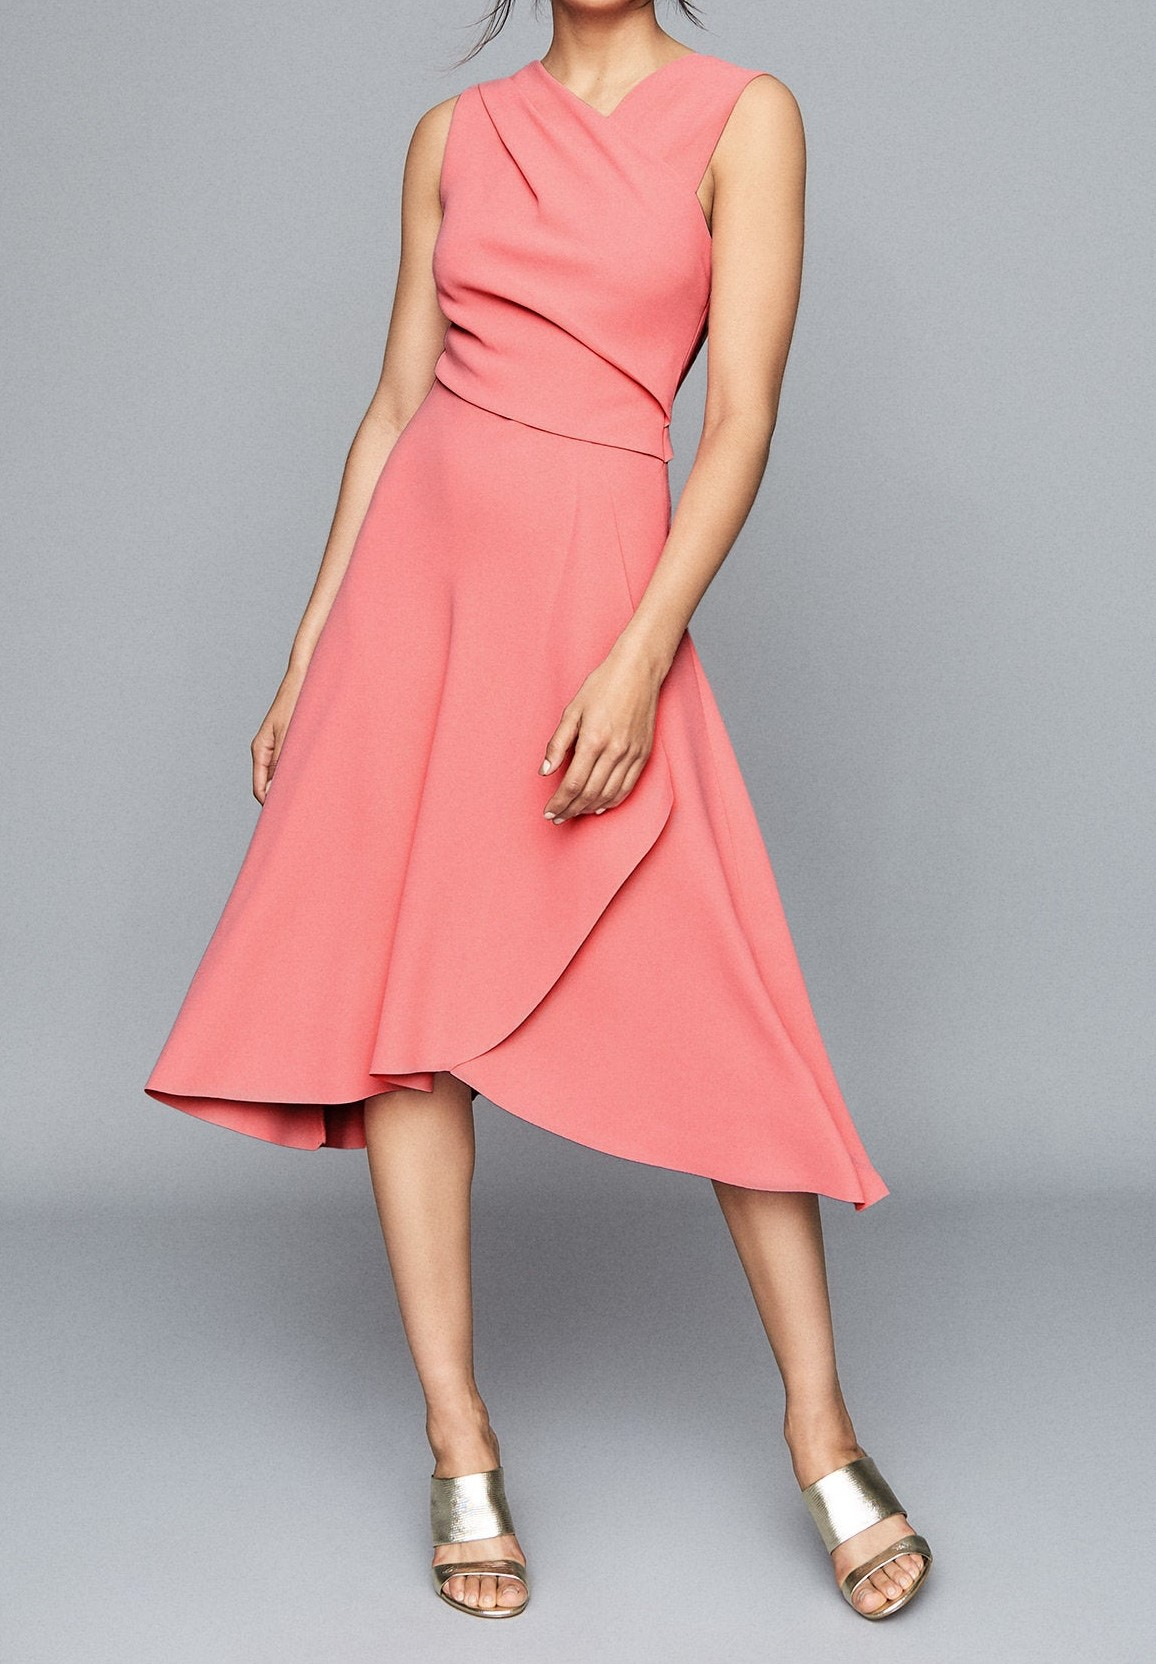 Pink Midi Dress for Over 60s